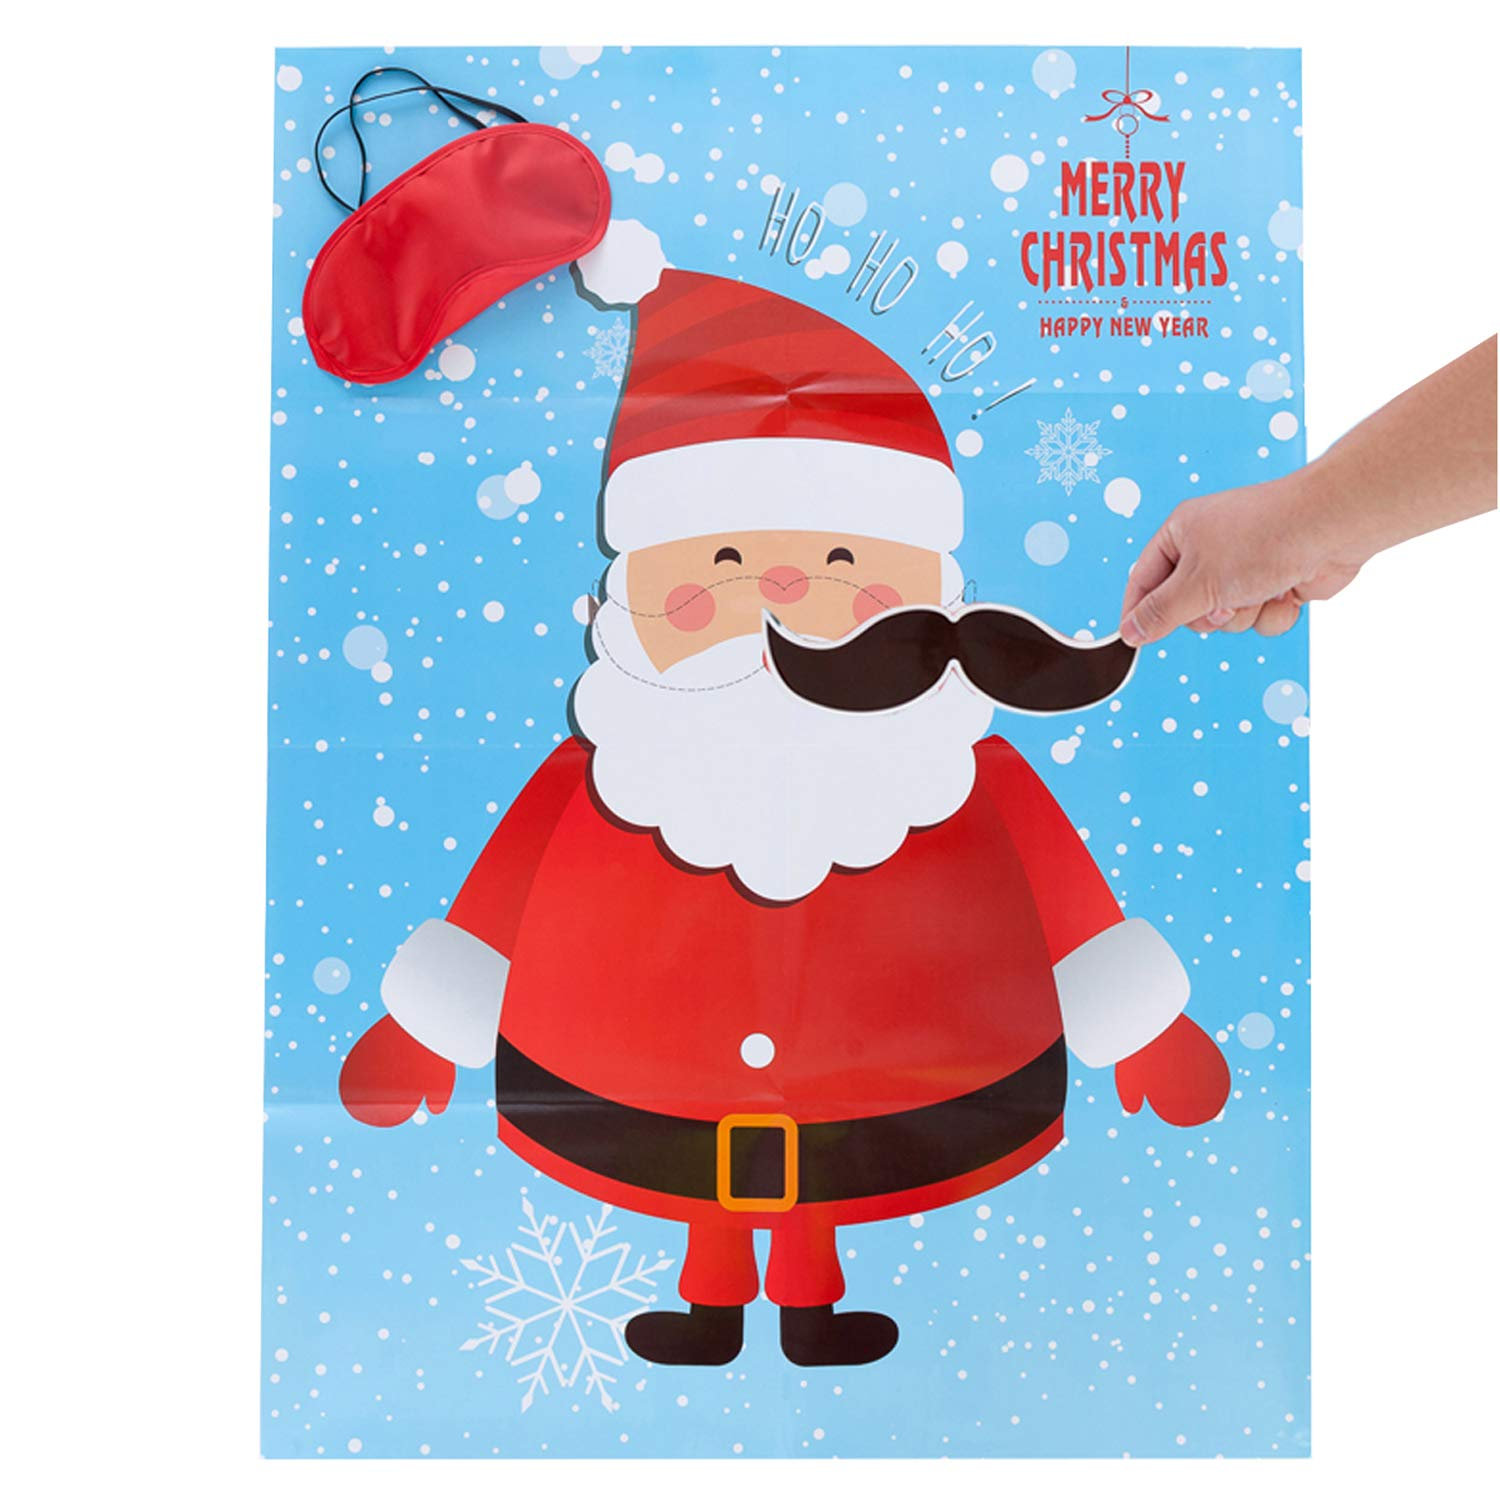 Miss Fantasy Christmas Party Games Pin The Beard On The Santa Claus Xmas Activities For Kids For Toddlers New Year Party Game For Families Santa Claus Amazon Ca Toys Games